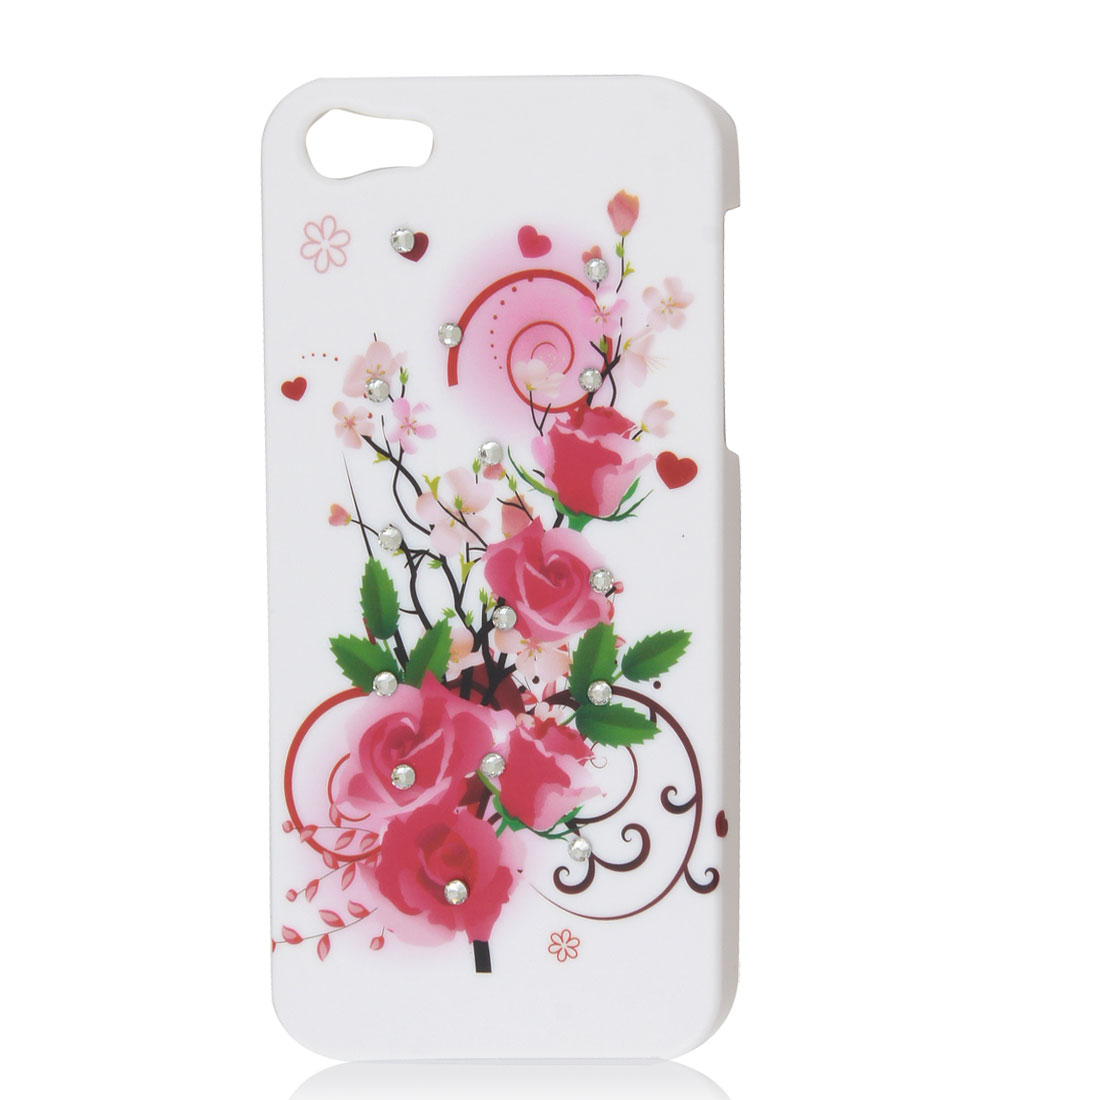 Glitter Pink Rose Flower Heart Hard Back Case Cover Skin White for iPhone 5 5G